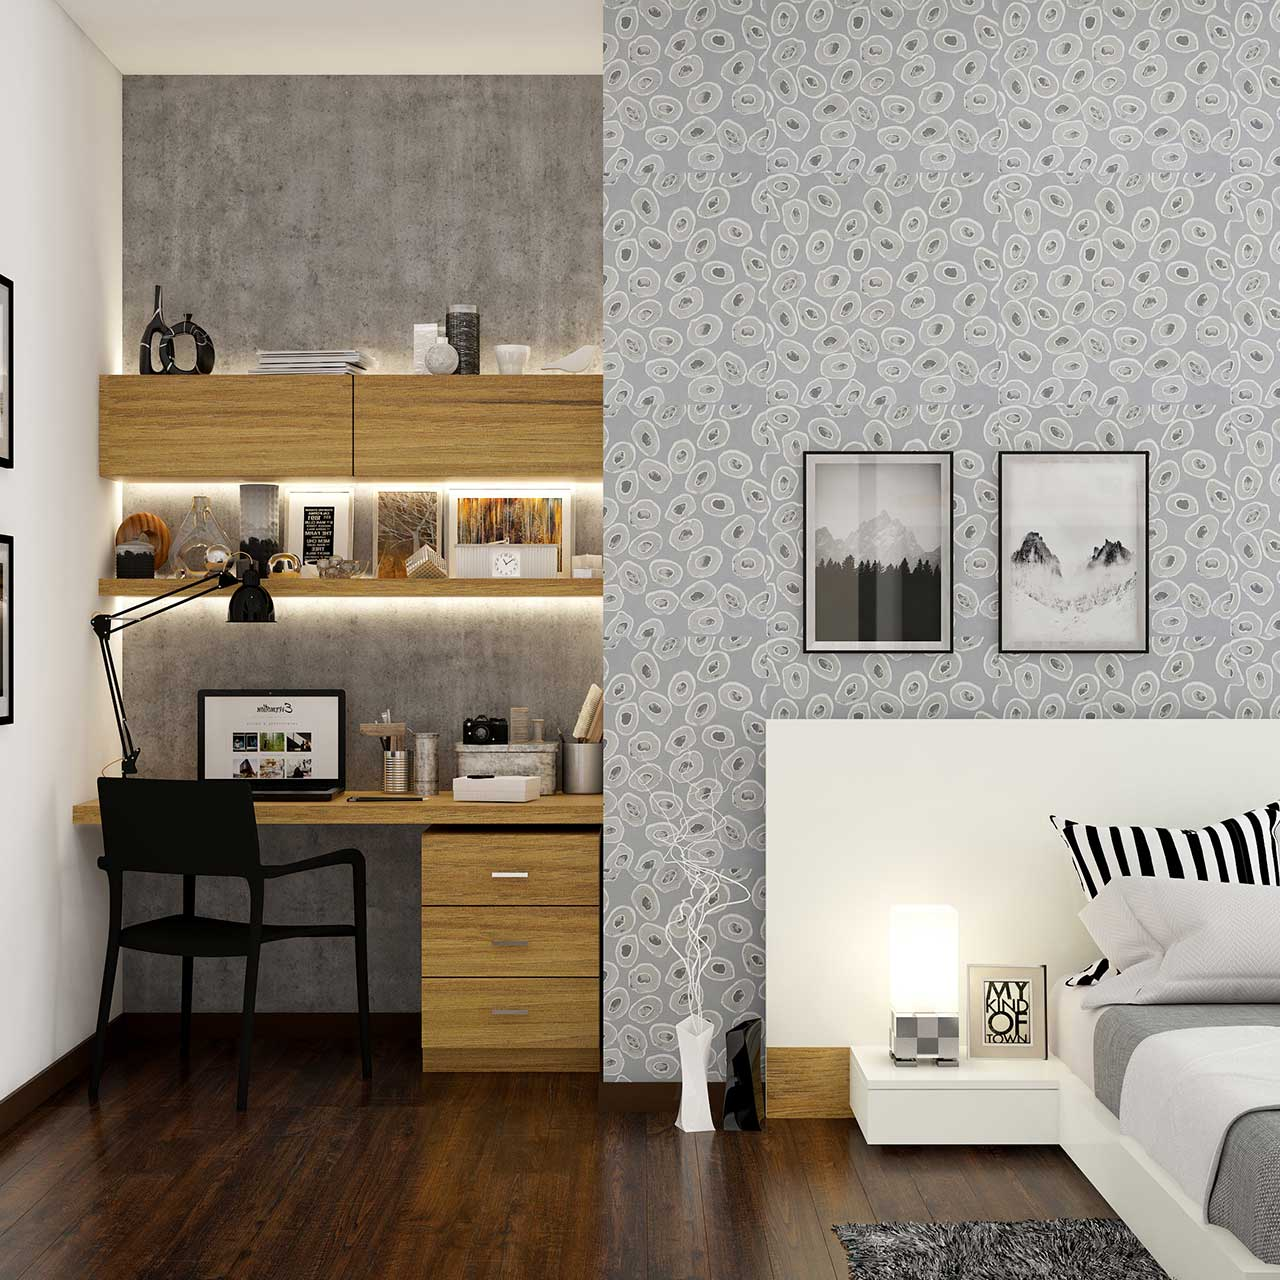 Corner study unit with led strips in the modern bedroom interior